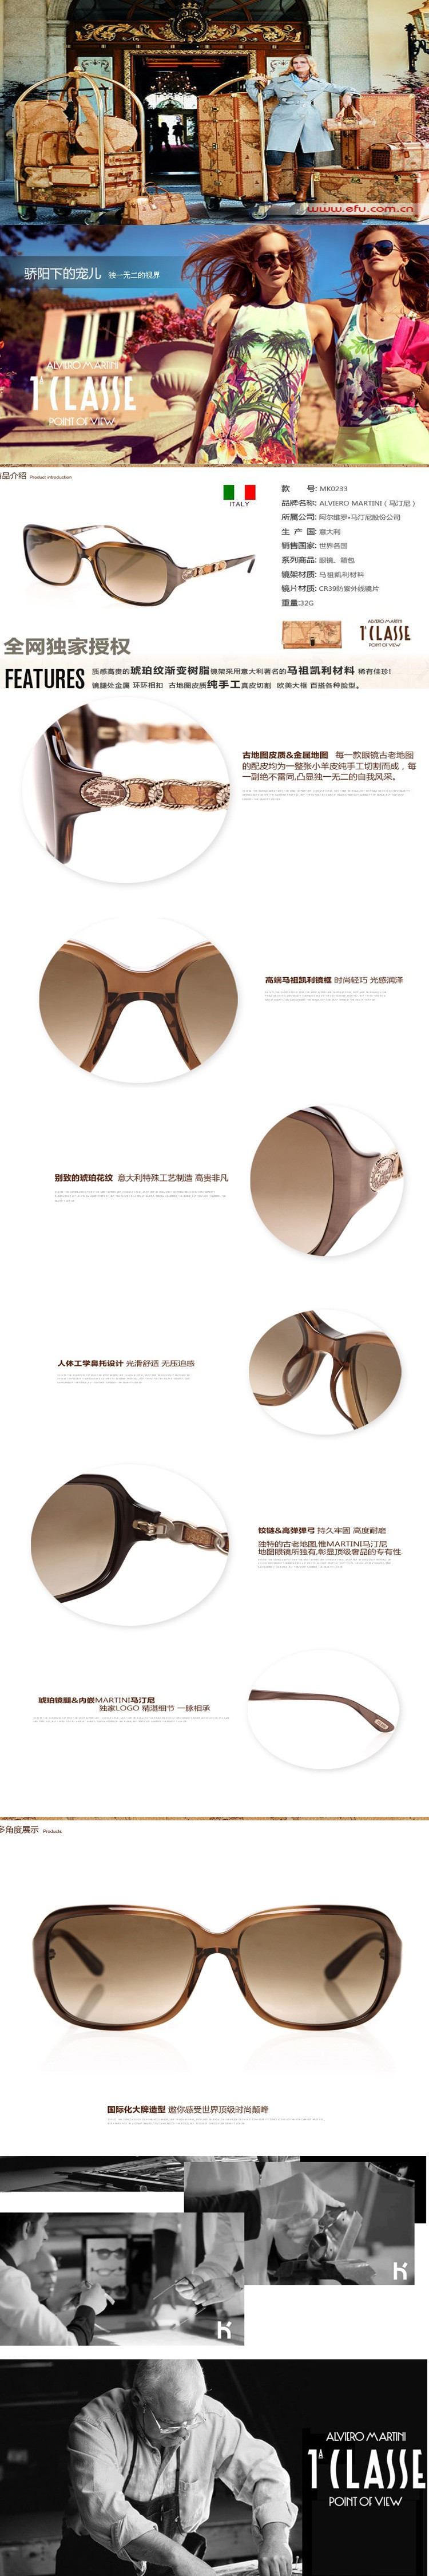 efbd326e25d Luxury Sunglasses Women Polaroid Sun Glasses Famous Brand Female Oversized  Sunglass Oculos De Sol Shades With Case MM0233